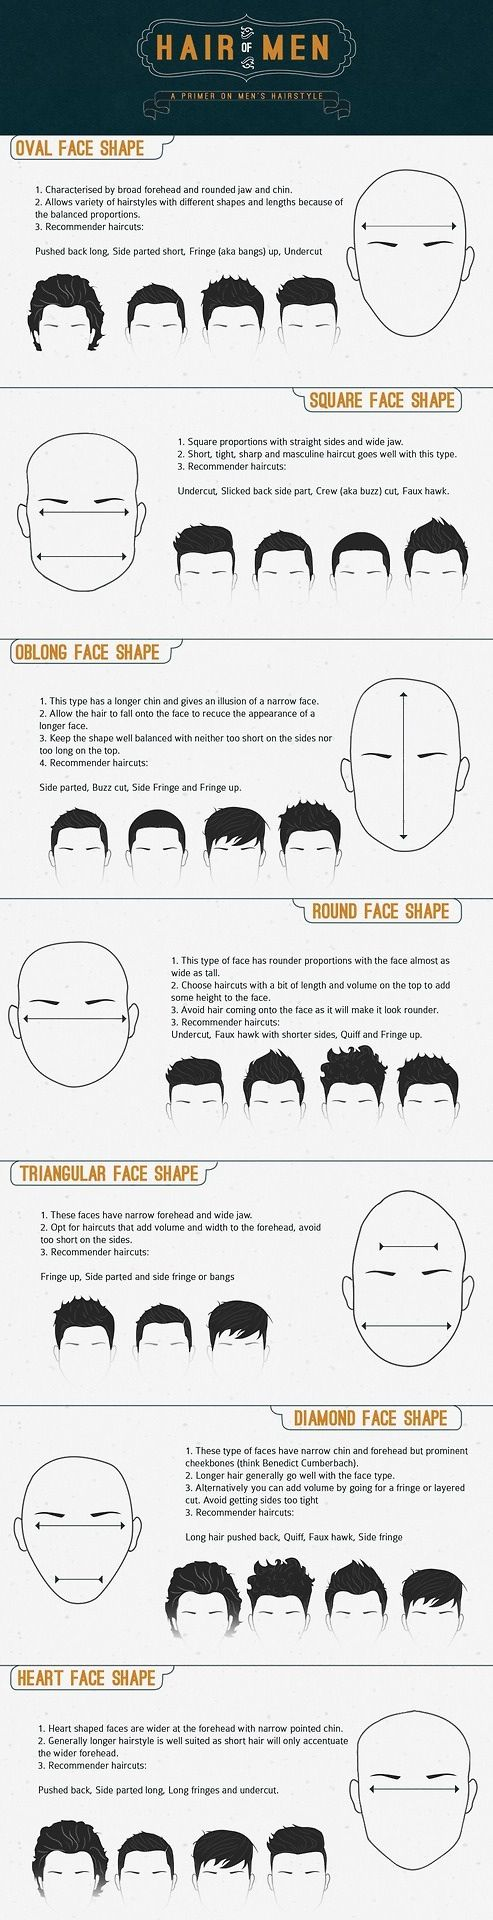 Different types of mens haircuts haircut model based on your face shape  barbering  pinterest